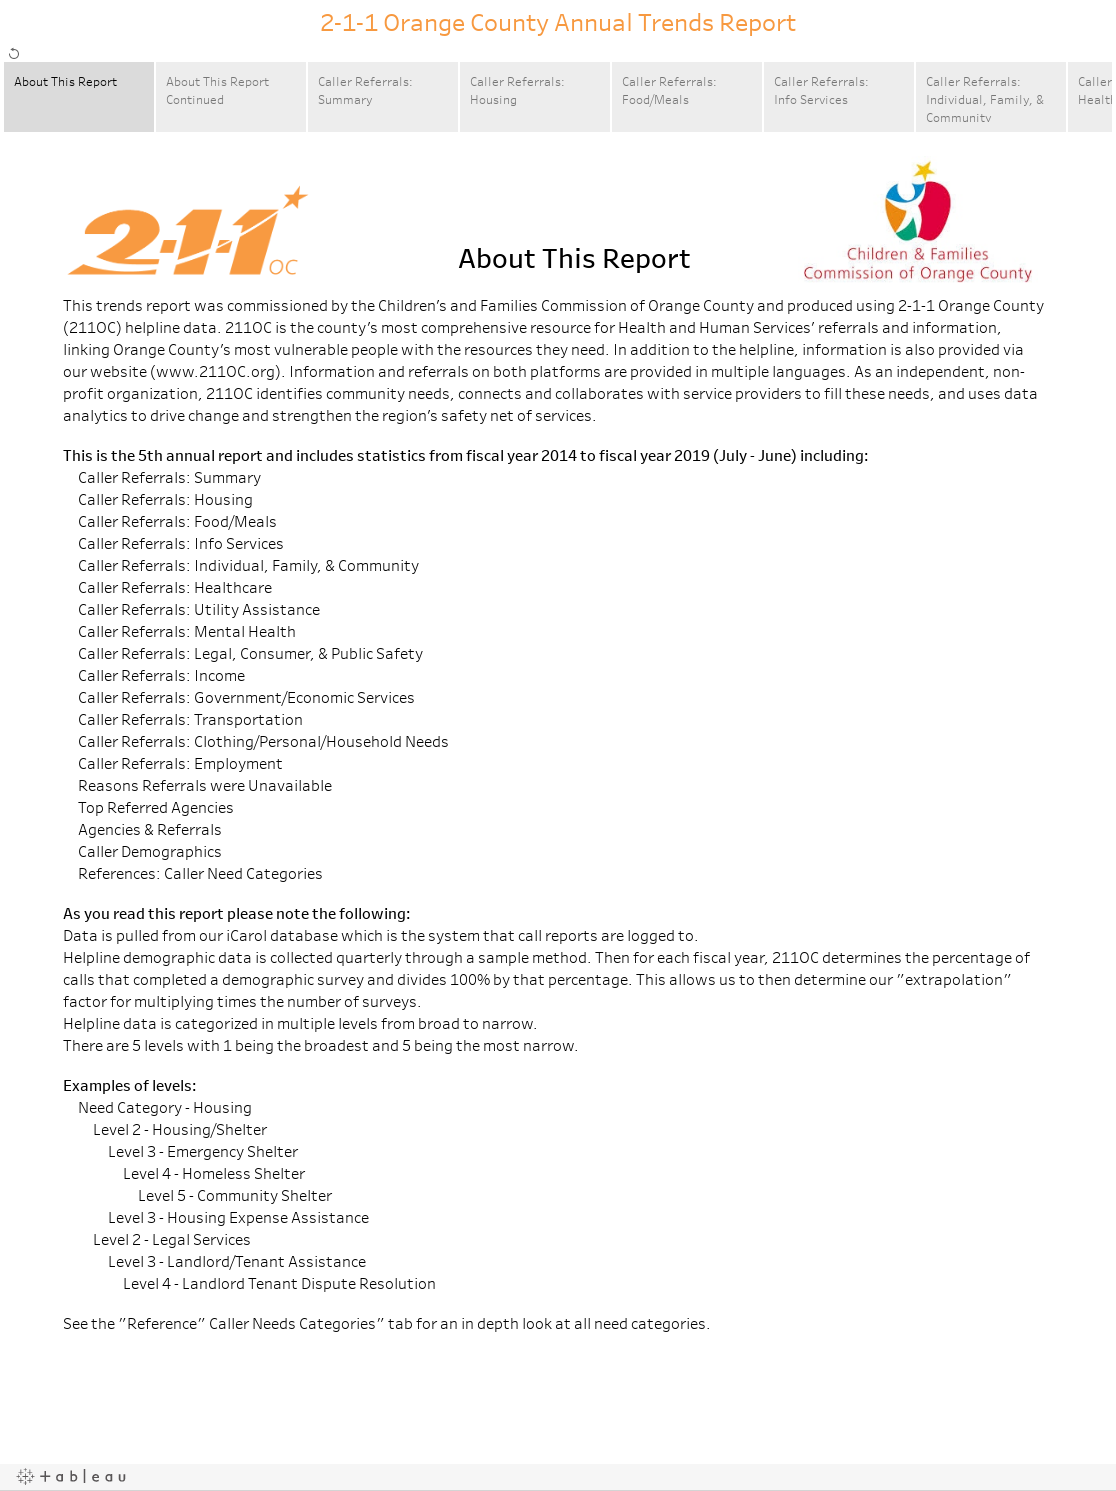 2-1-1 Orange County Annual Trends Report